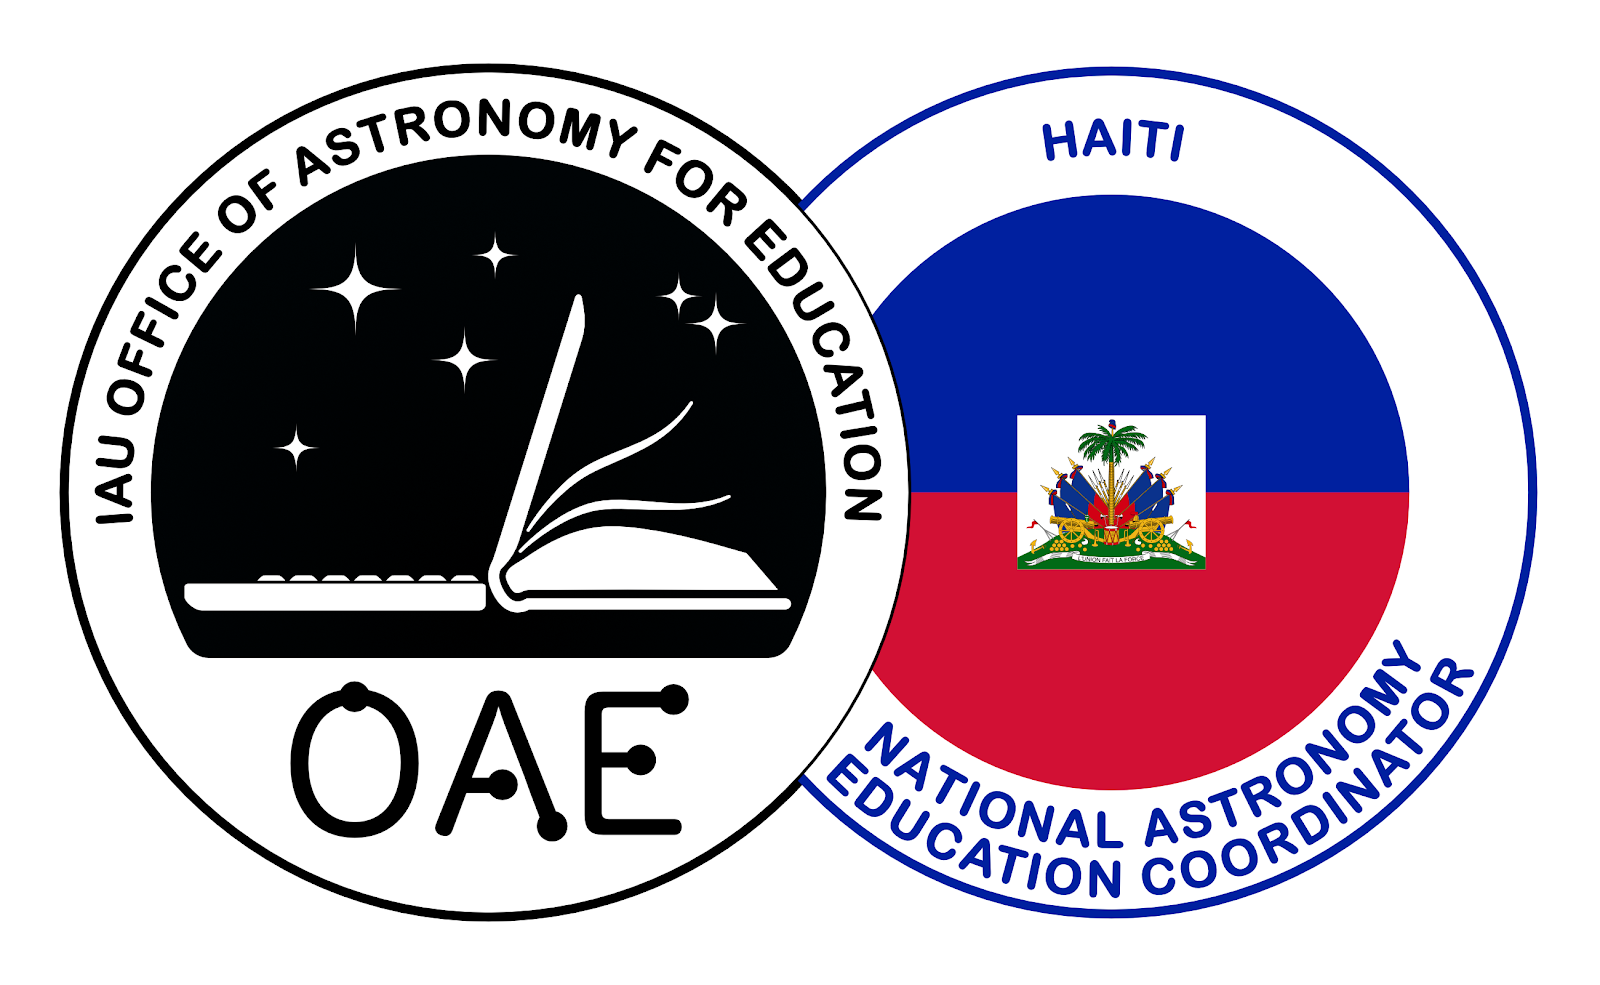 Coordination Nationale pour l'Education de l'Astronomie Haiti